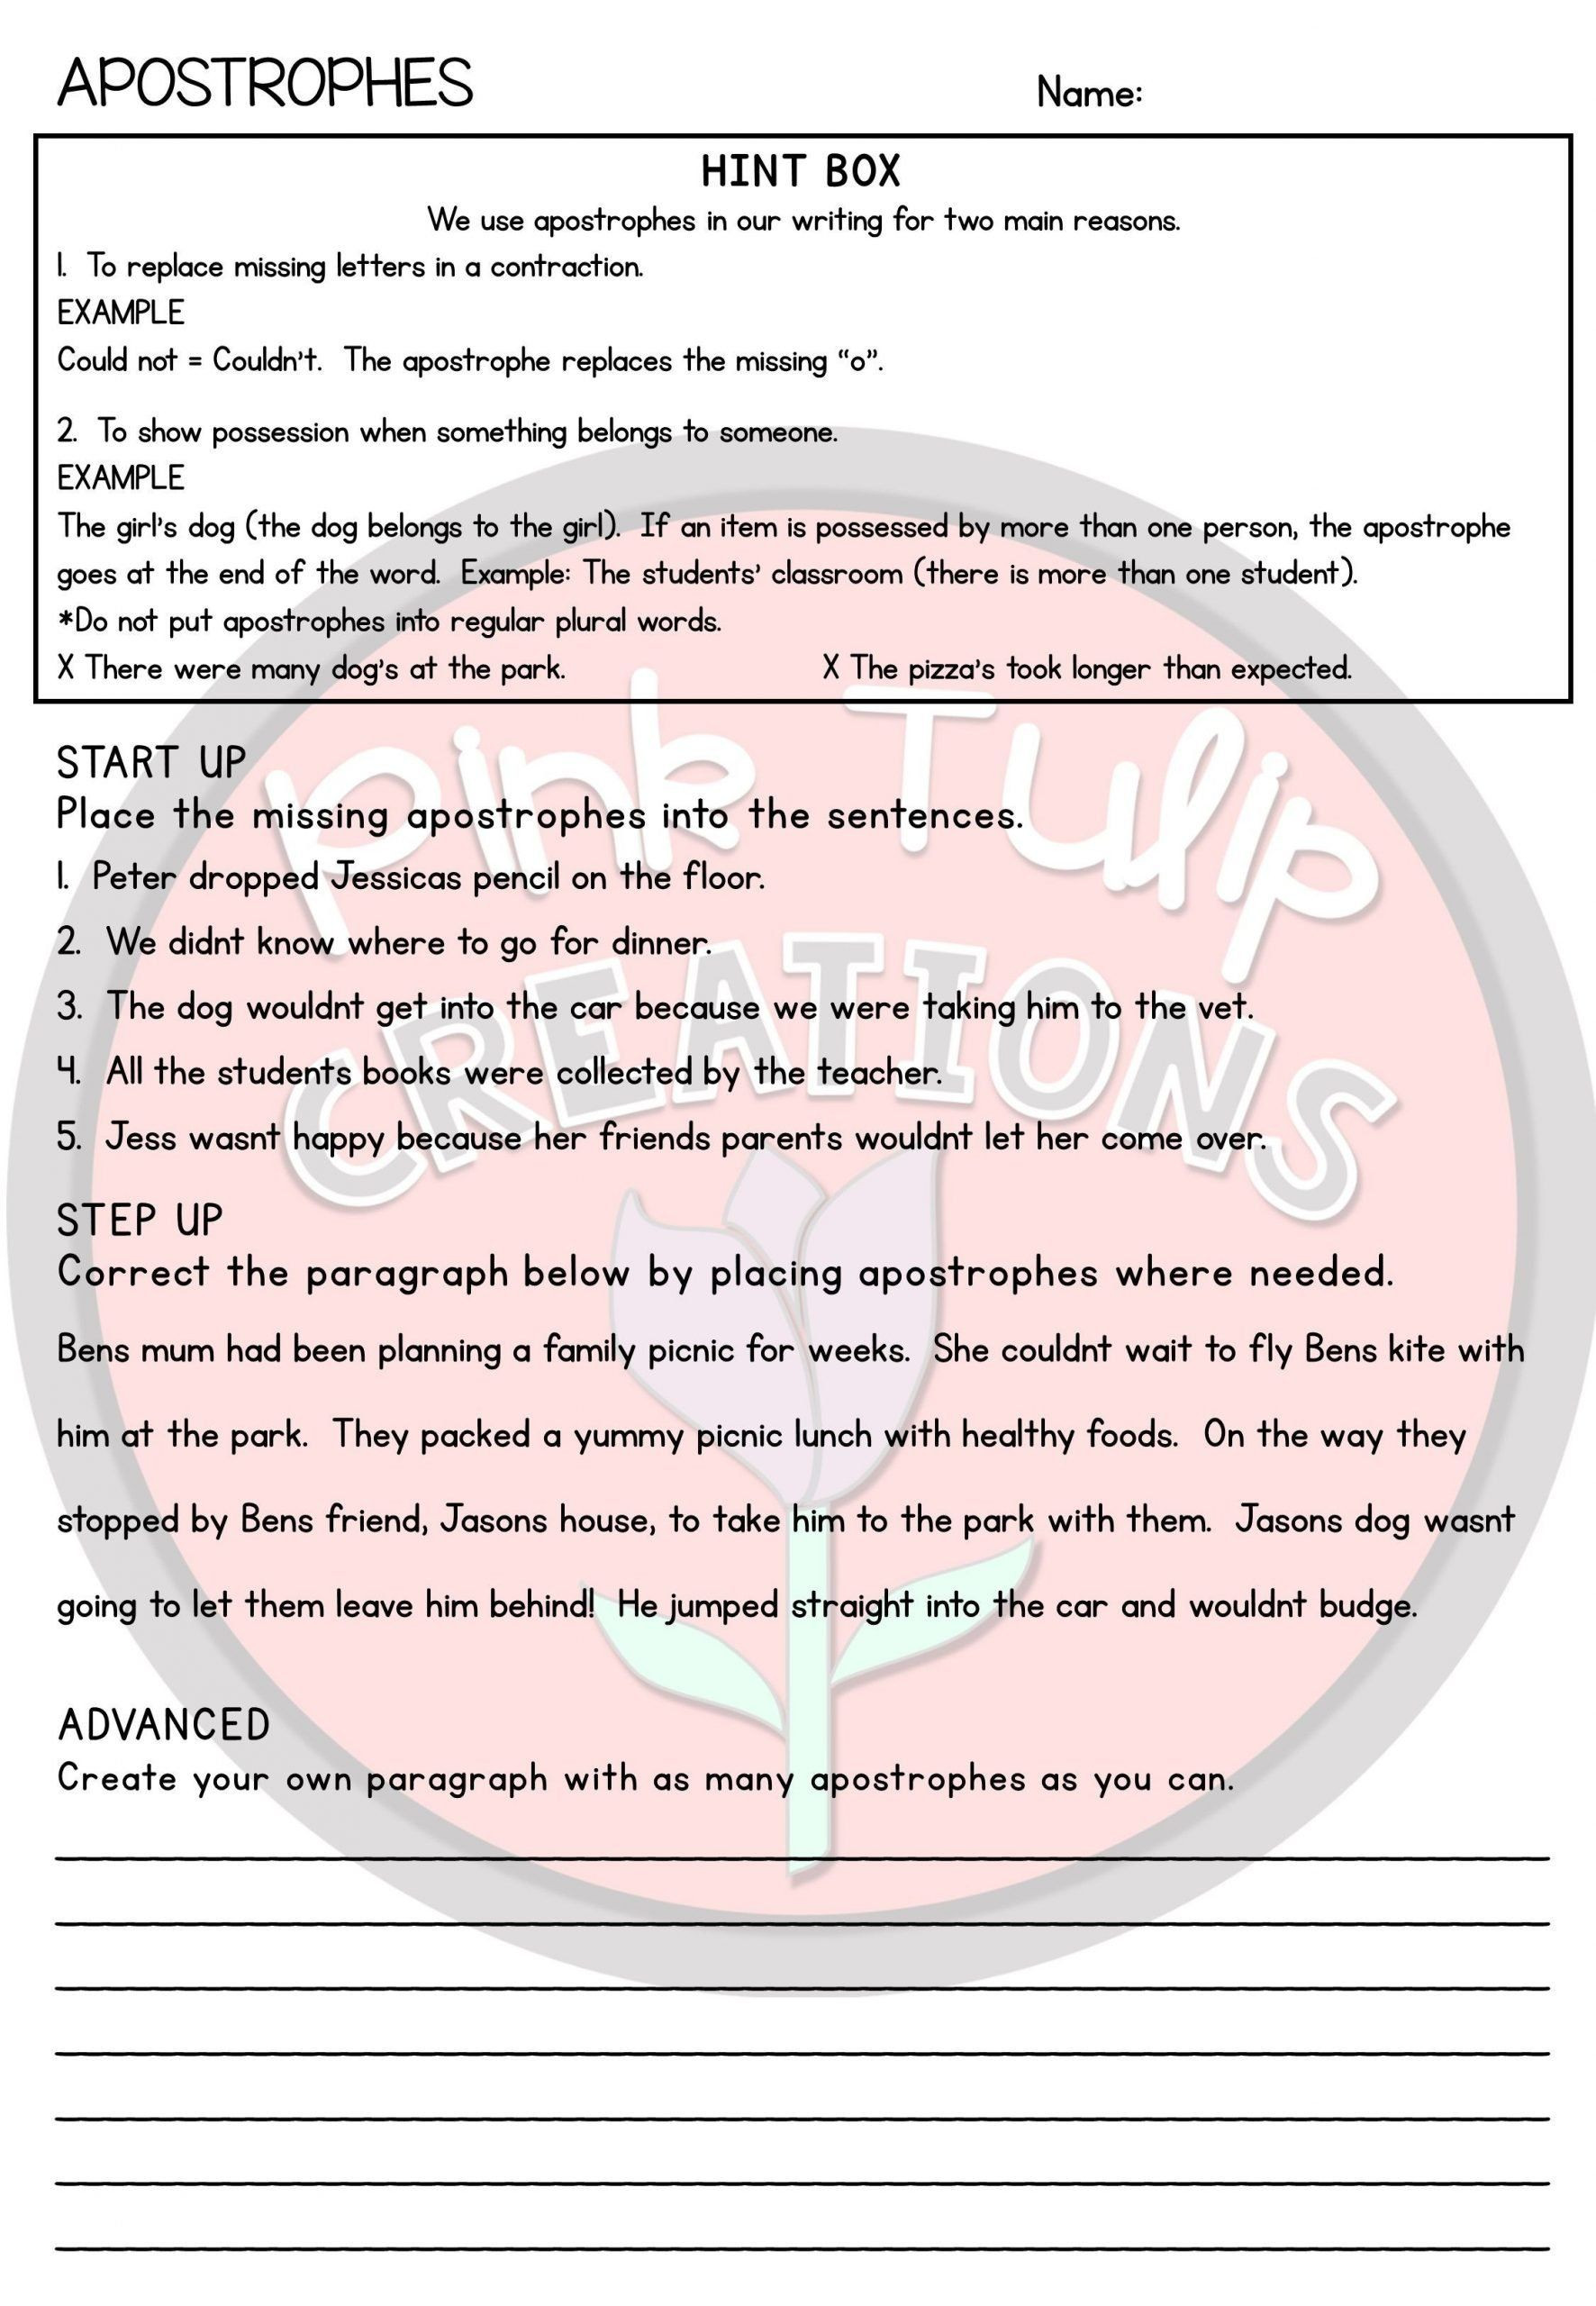 Drawing Conclusions Worksheets 4th Grade Drawing Conclusions Worksheets 5th Grade Grammar Worksheet